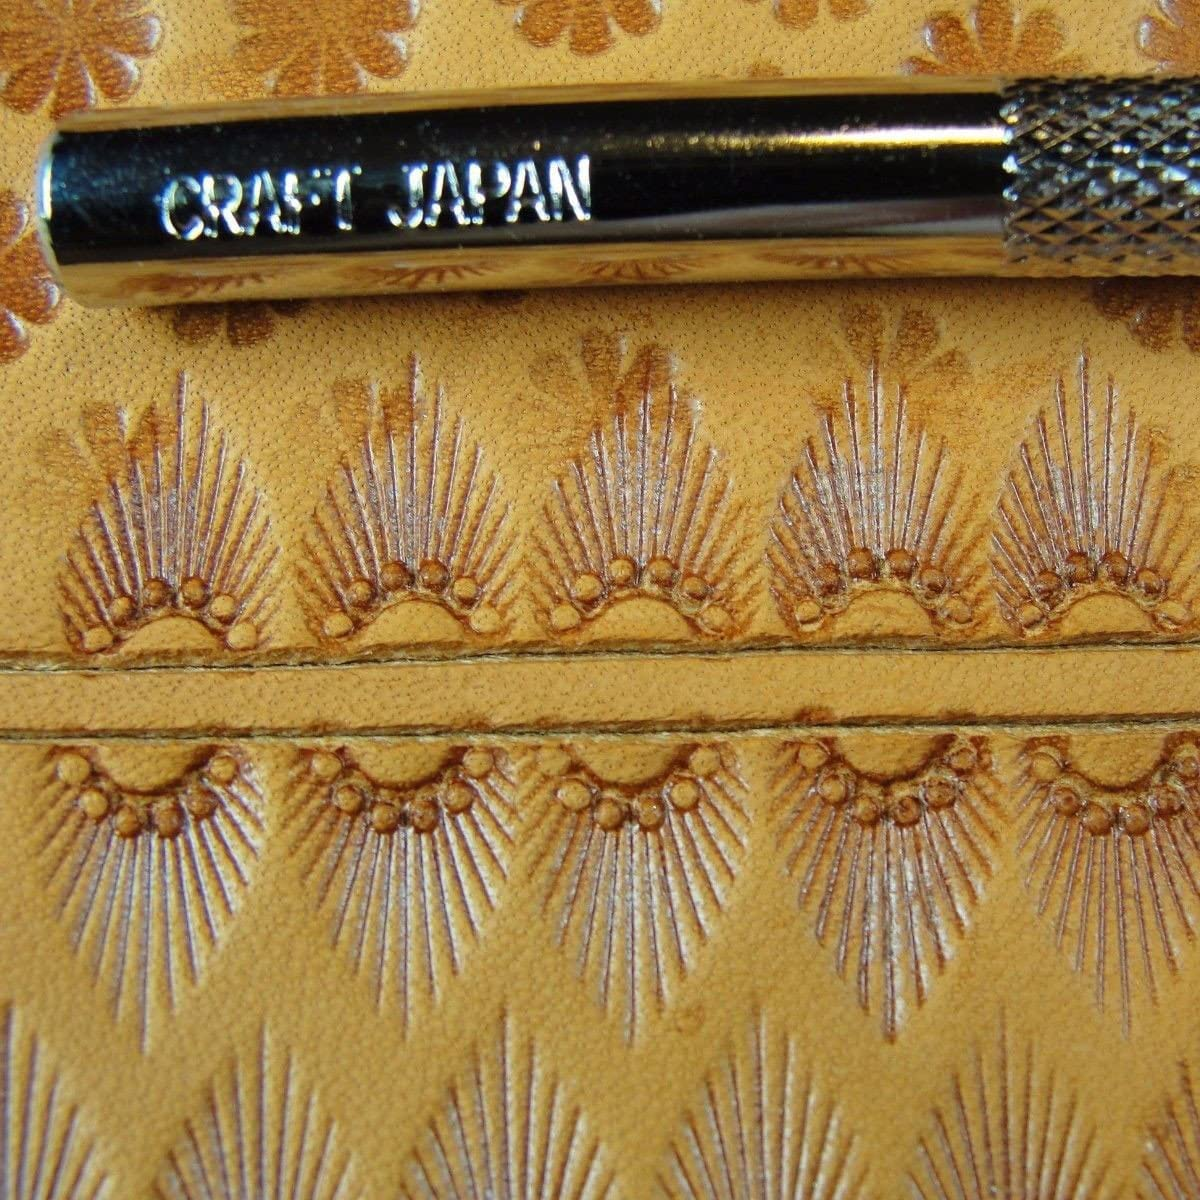 Steel Craft Japan Leather Stamping Tool #D607 11-Seed Border Stamp